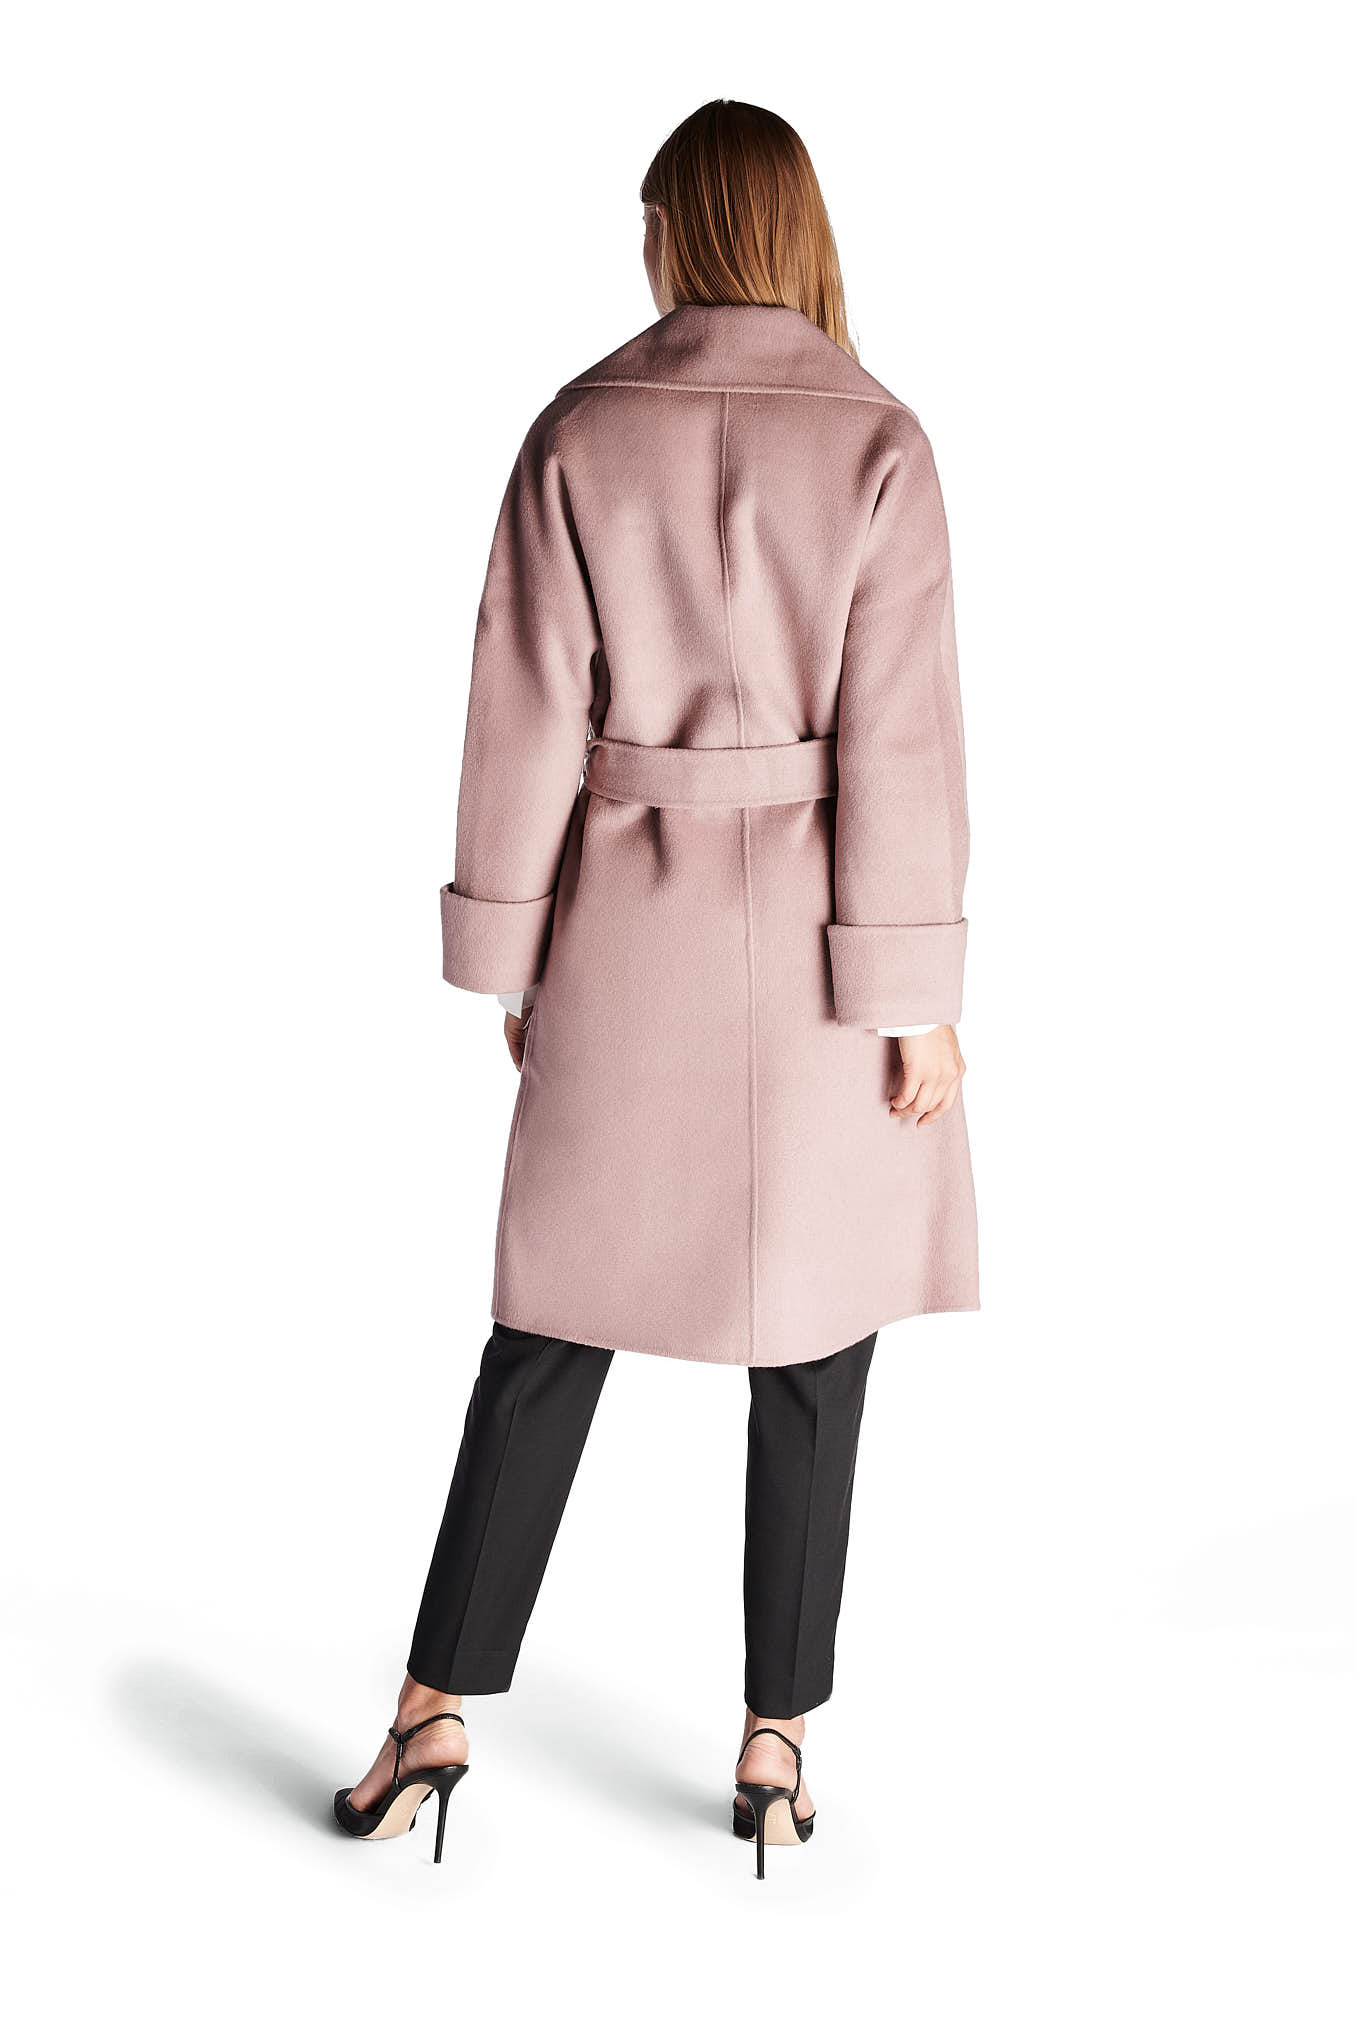 Overcoat Pink Casual Woman